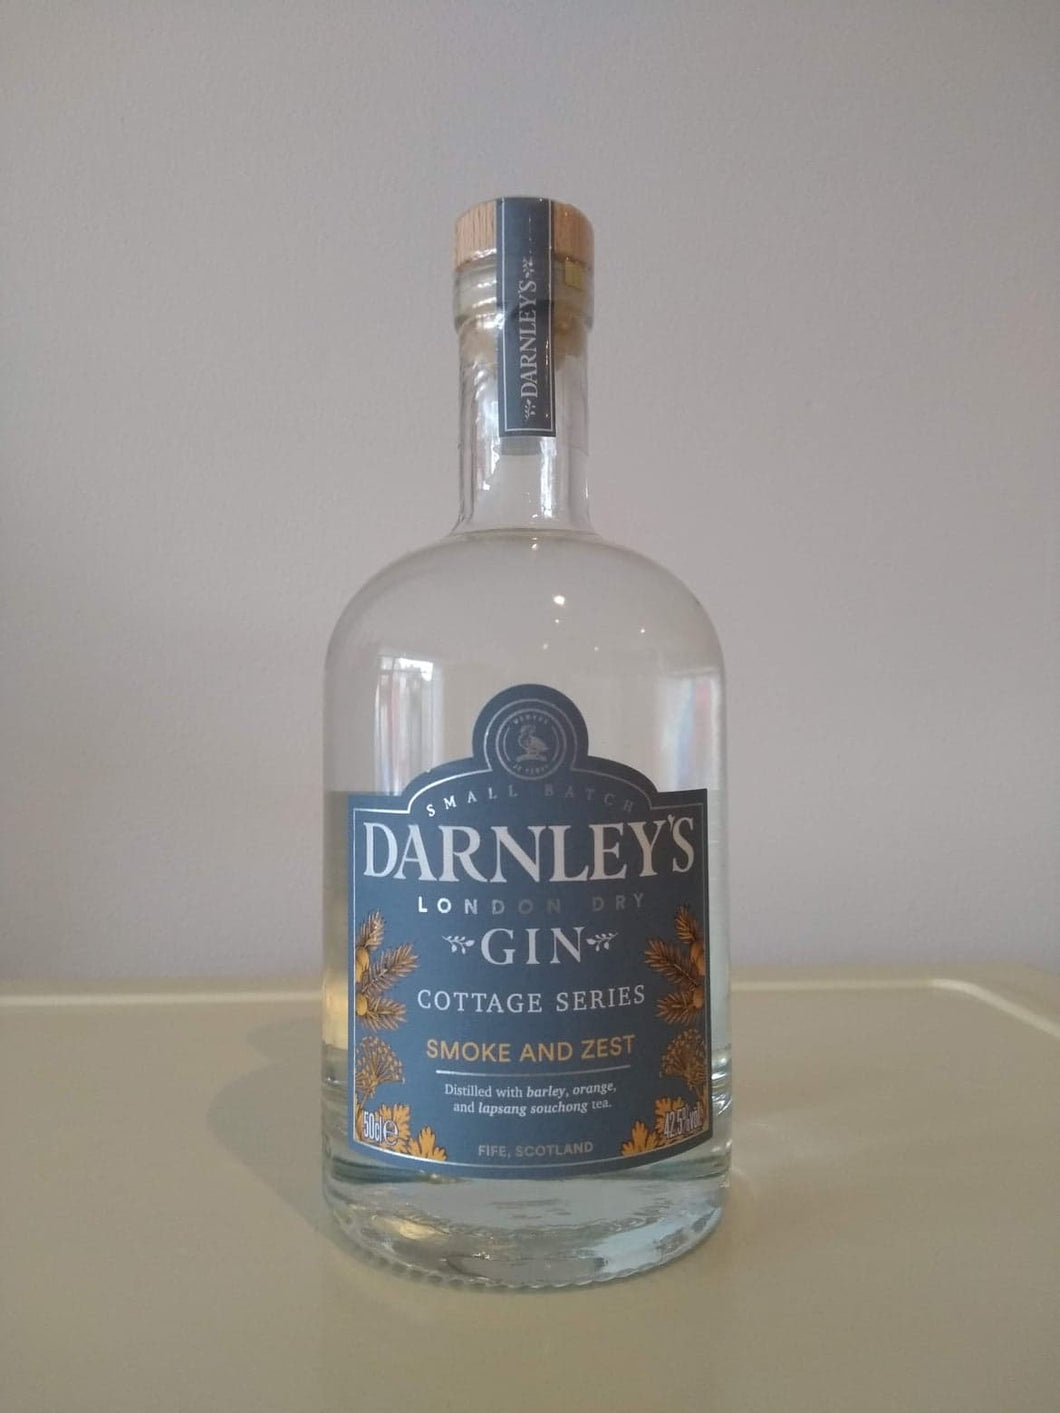 Darnley's Smoke & Zest Cottage Series Gin 50cl